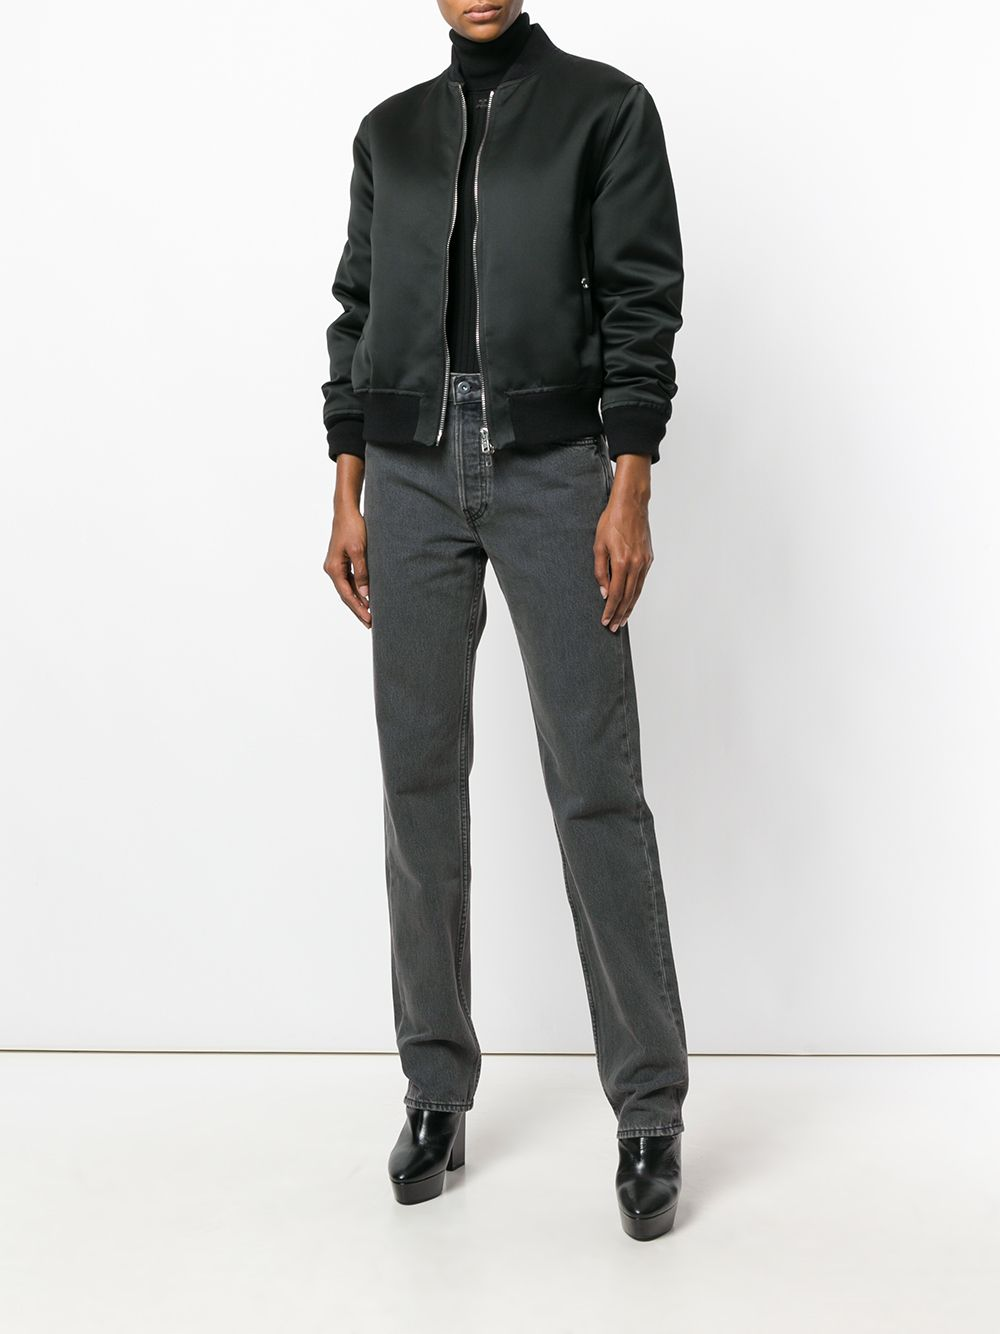 faded dark jeans by Yeezy, available on farfetch.com Kendall Jenner Pants Exact Product